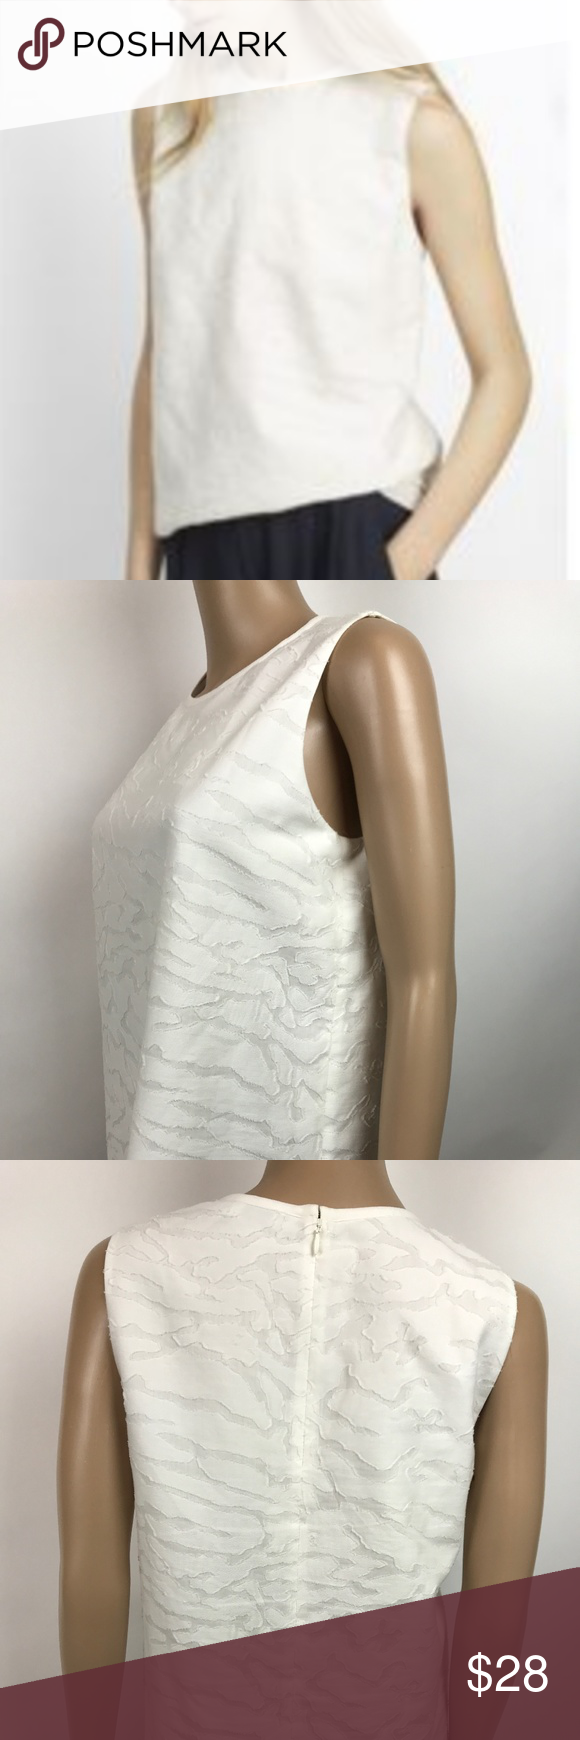 689018967c4177 Textured White silk blend tank top blouse VINCE. women s size small white  2-layer